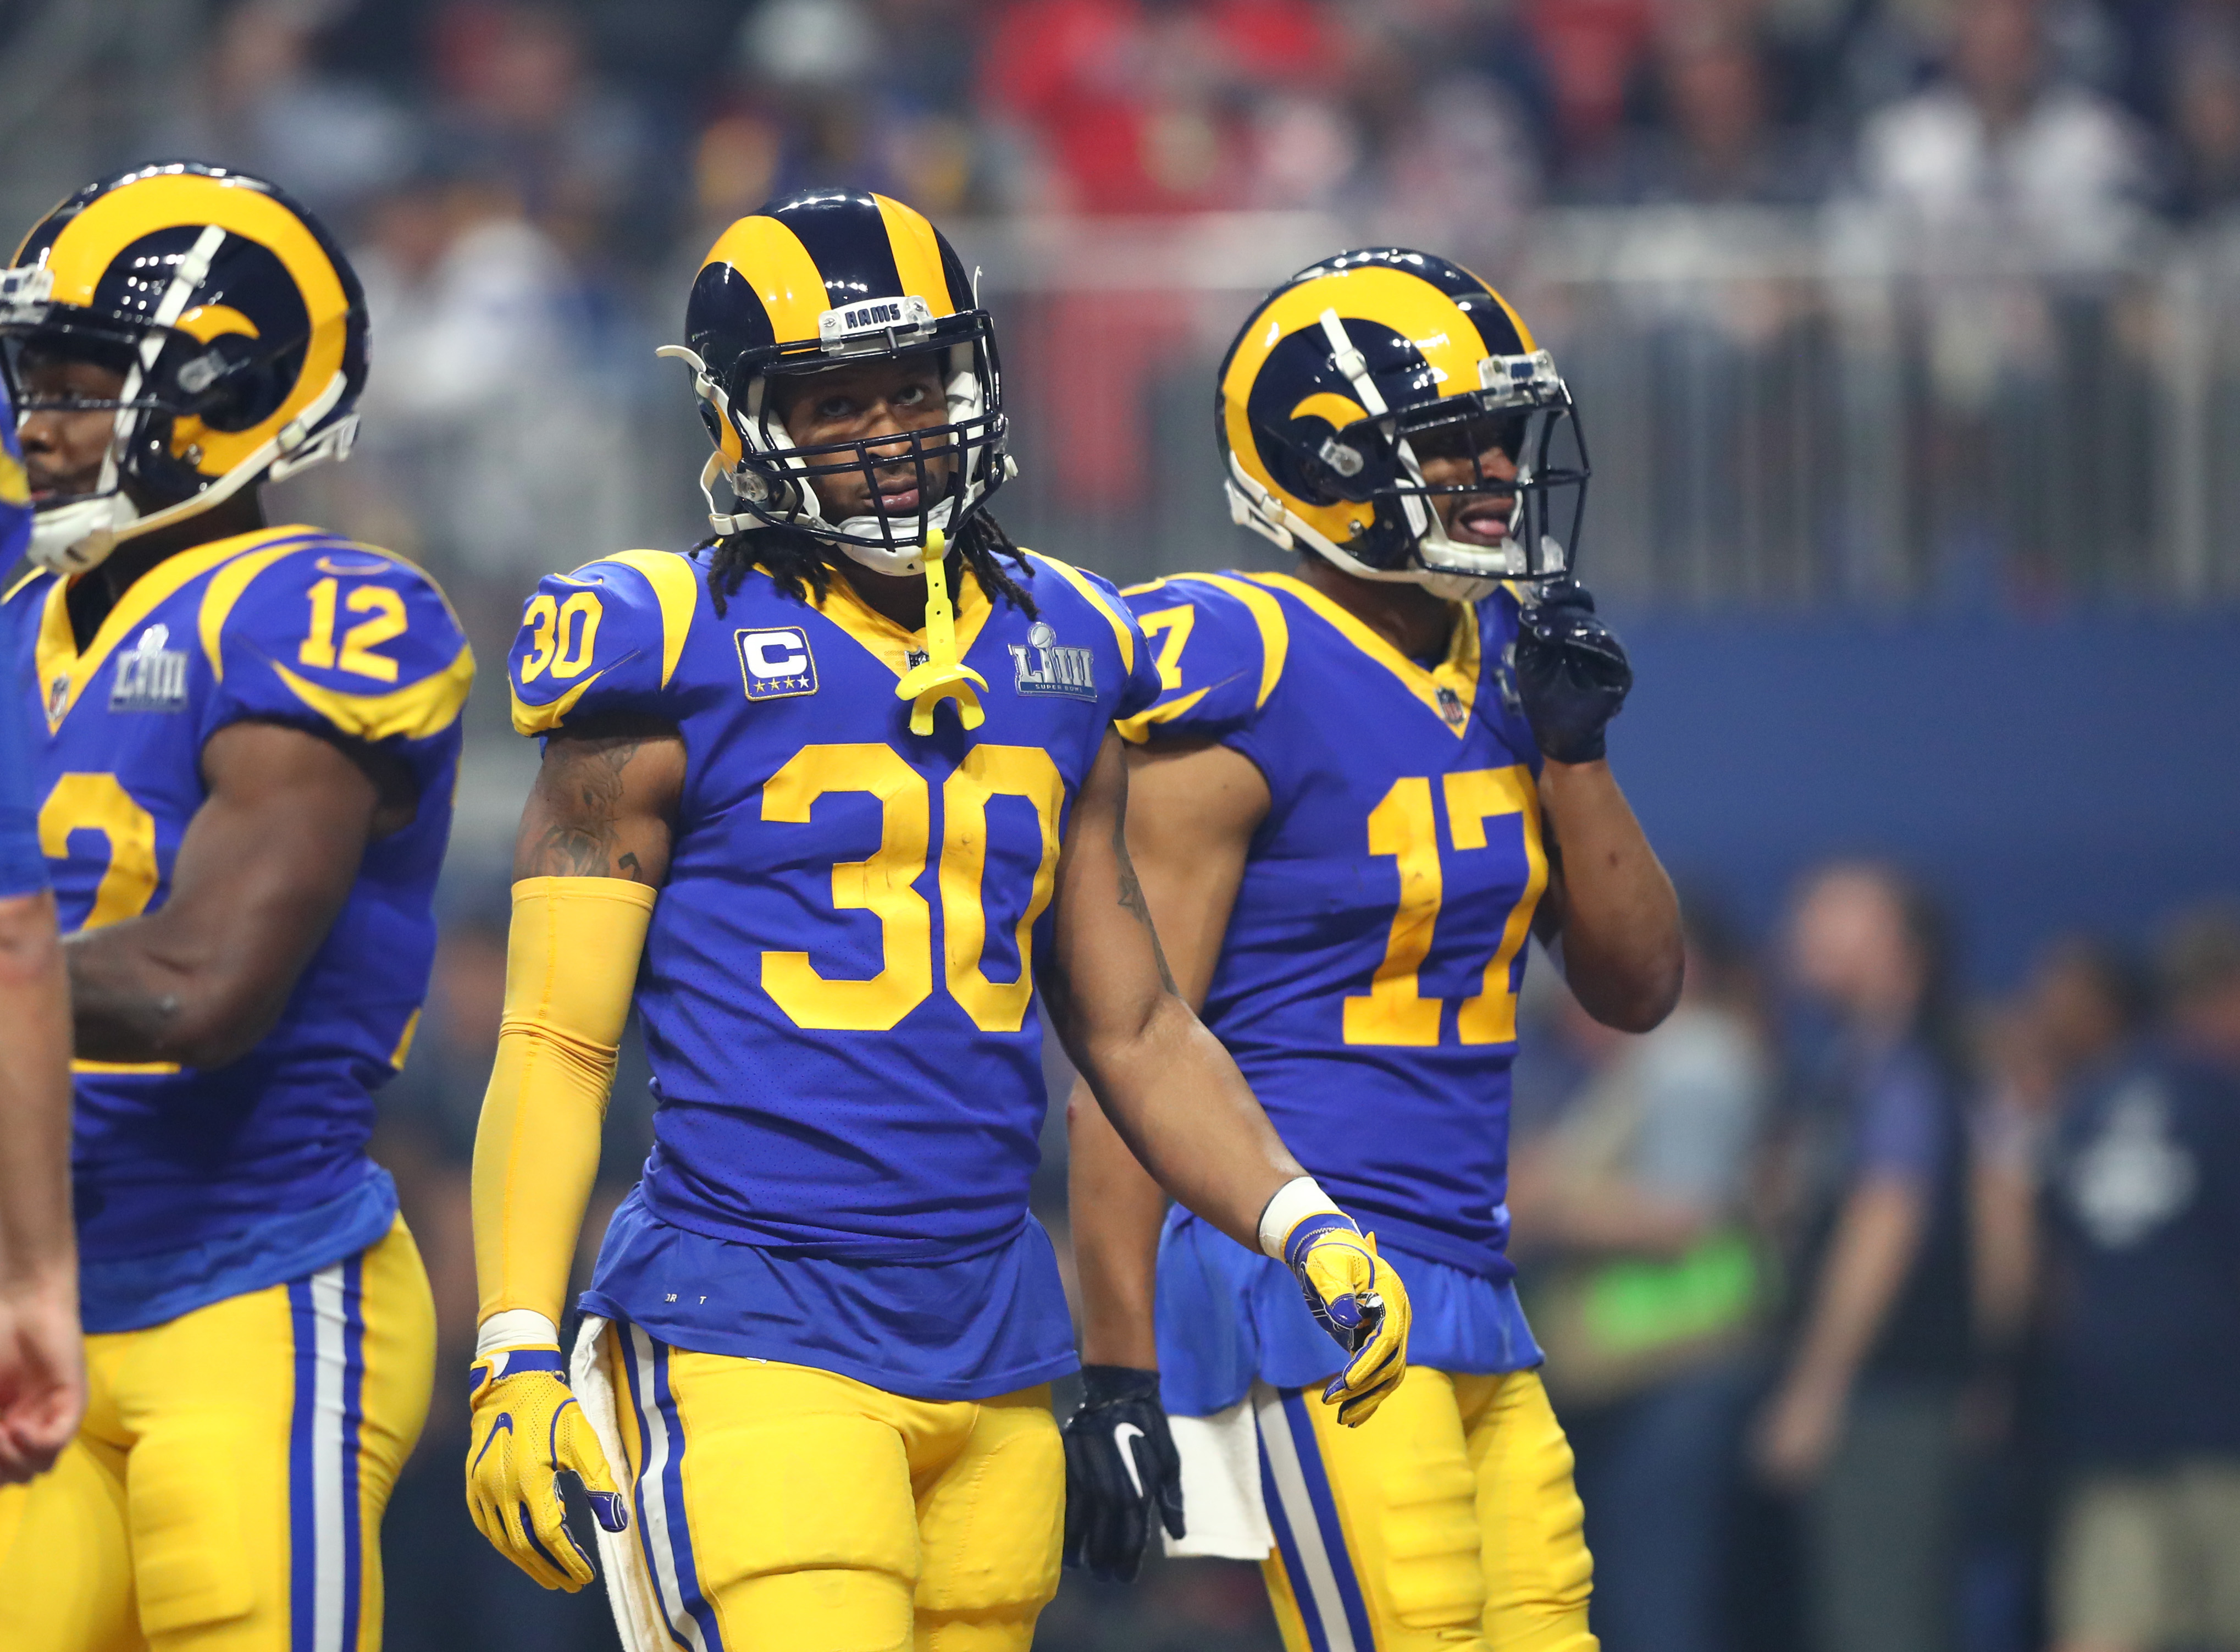 Todd Gurley's Dominance Seems to be Short-Lived